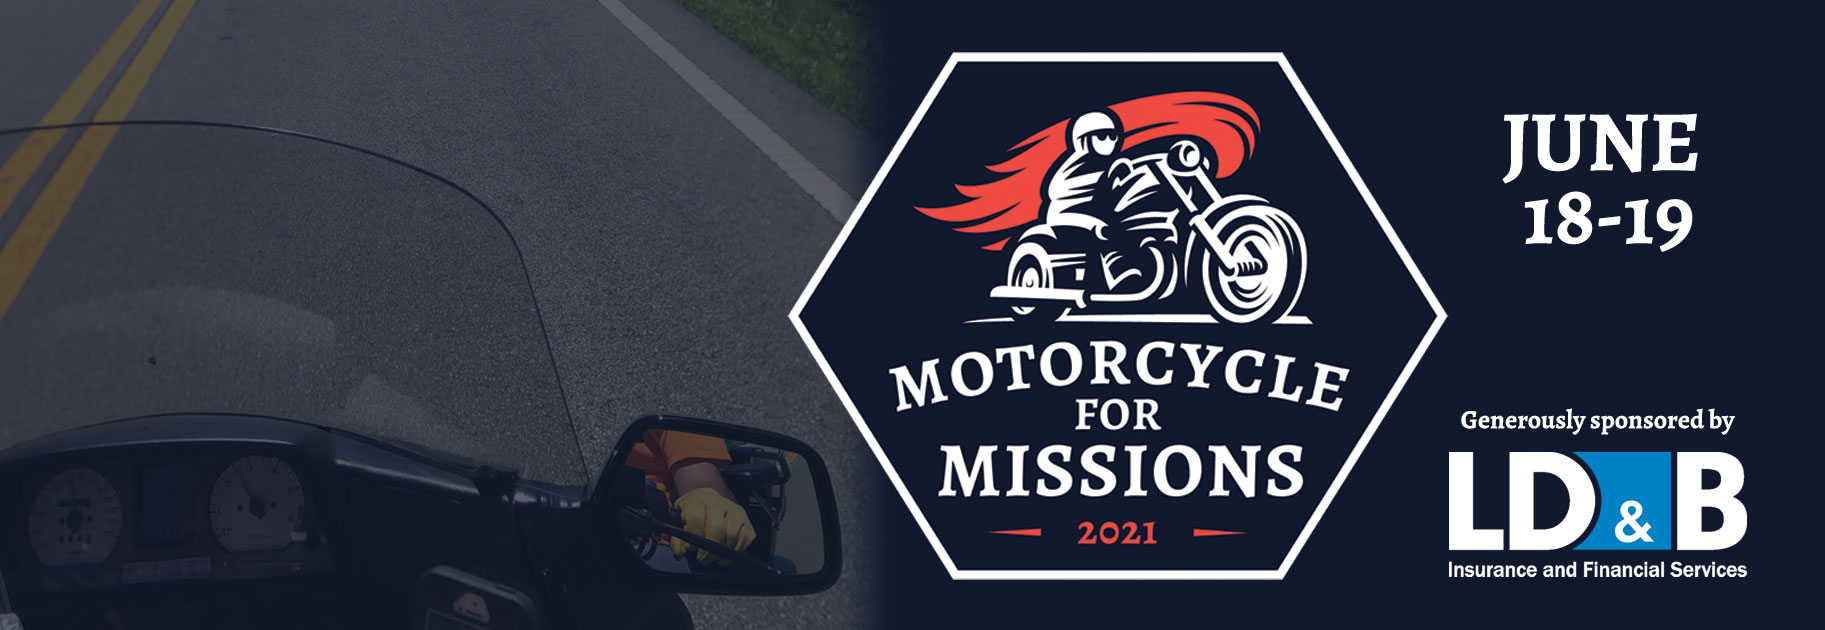 Motorcycle for Missions